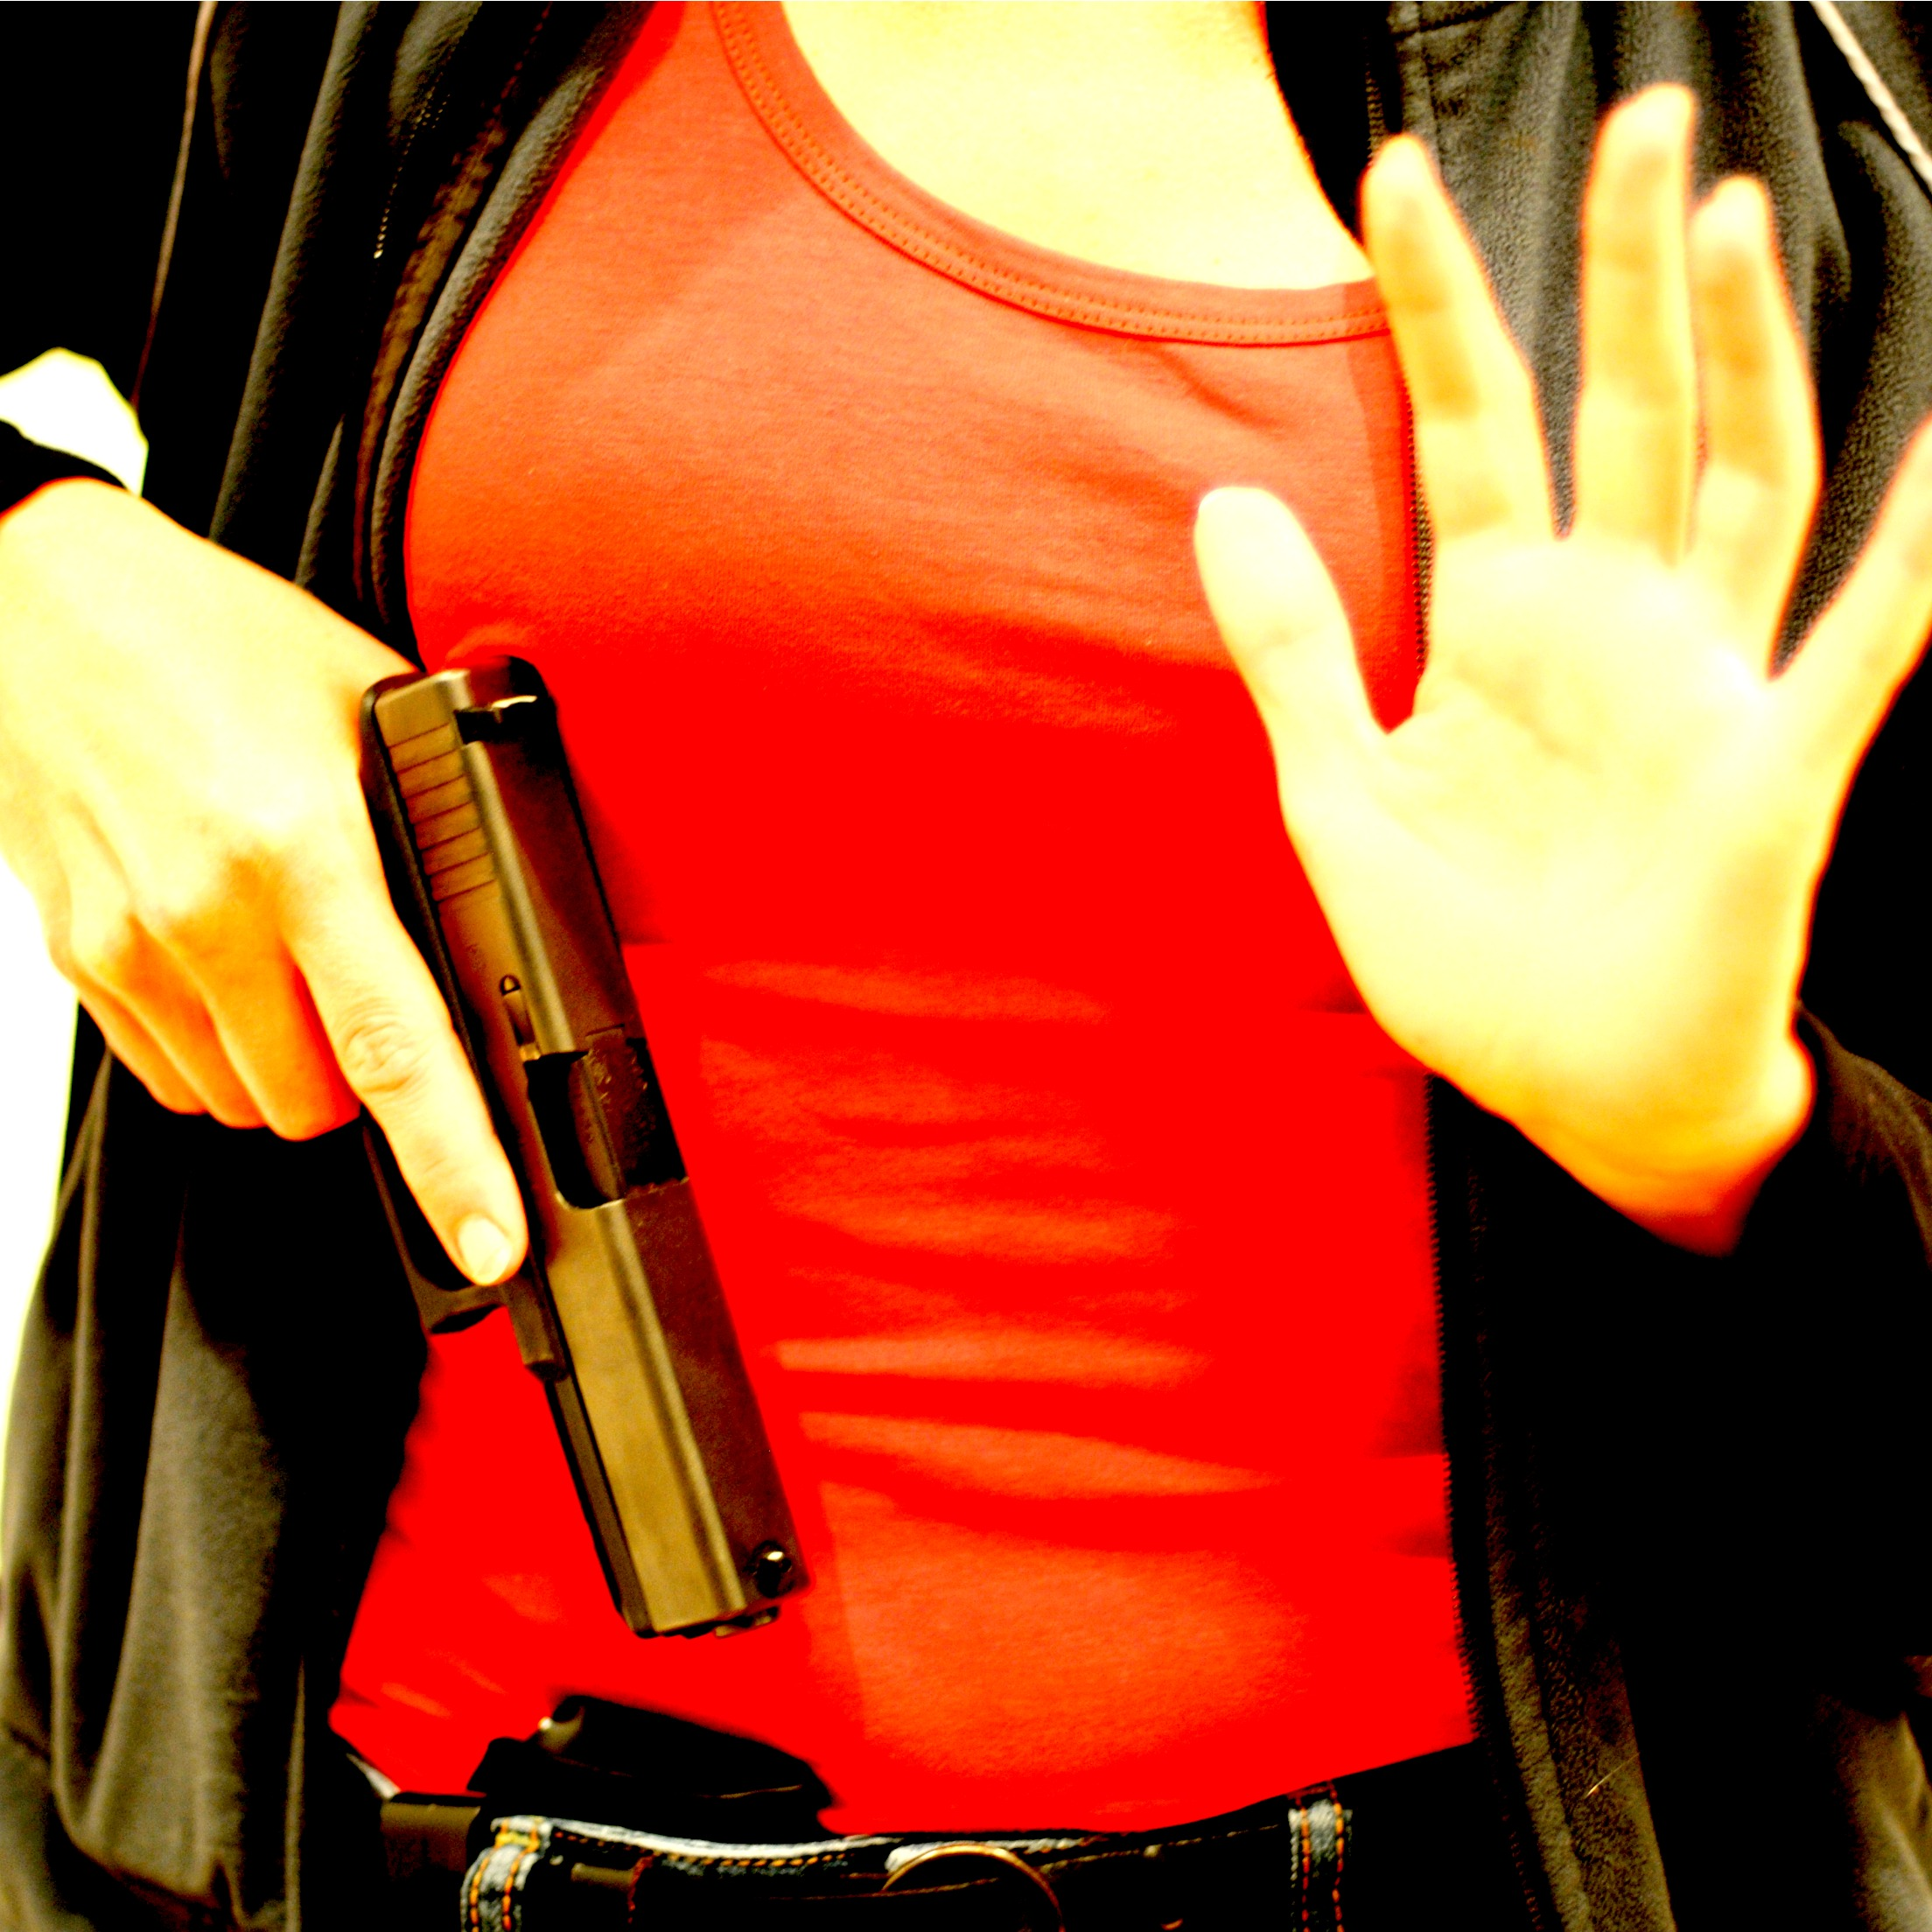 Best Concealed Carry Handgun 2013